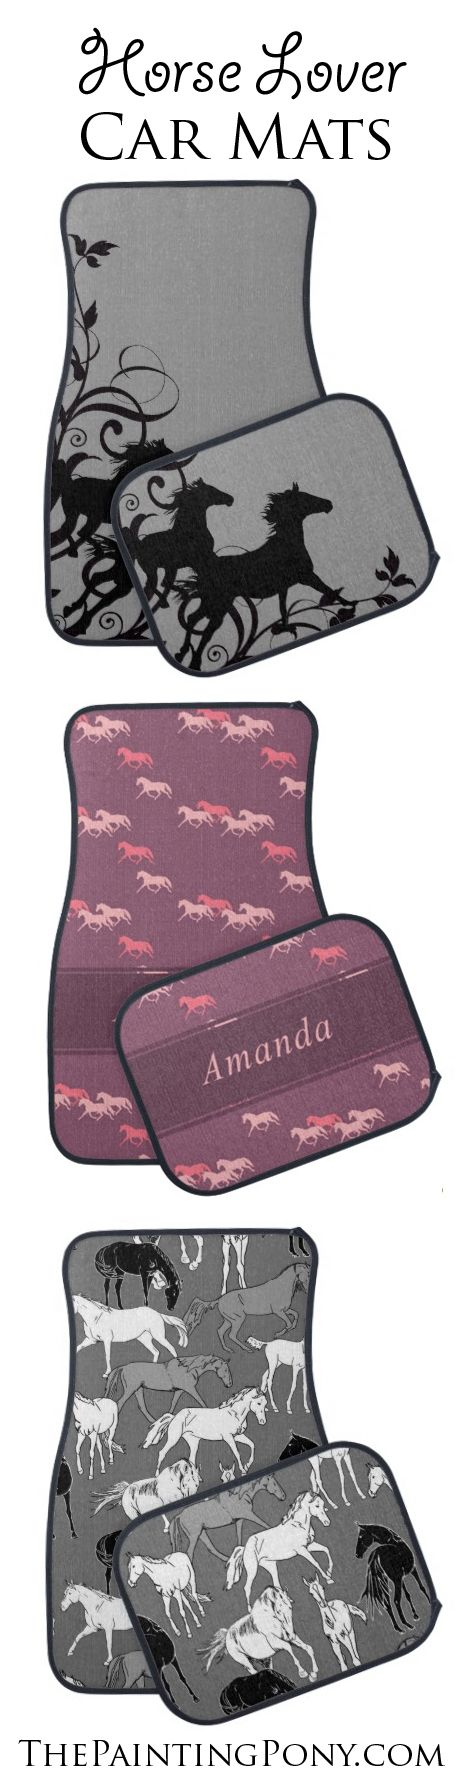 Equestrian Car & Truck Floor Mats - horse lover themed auto floormats - anyone who loves horses, ponies, and horseback riding from hunter jumper, dressage trainer to the cowgirl style barrel racing and reining rider will love these great floor mats for the car. Equestrian style! Personalized too!